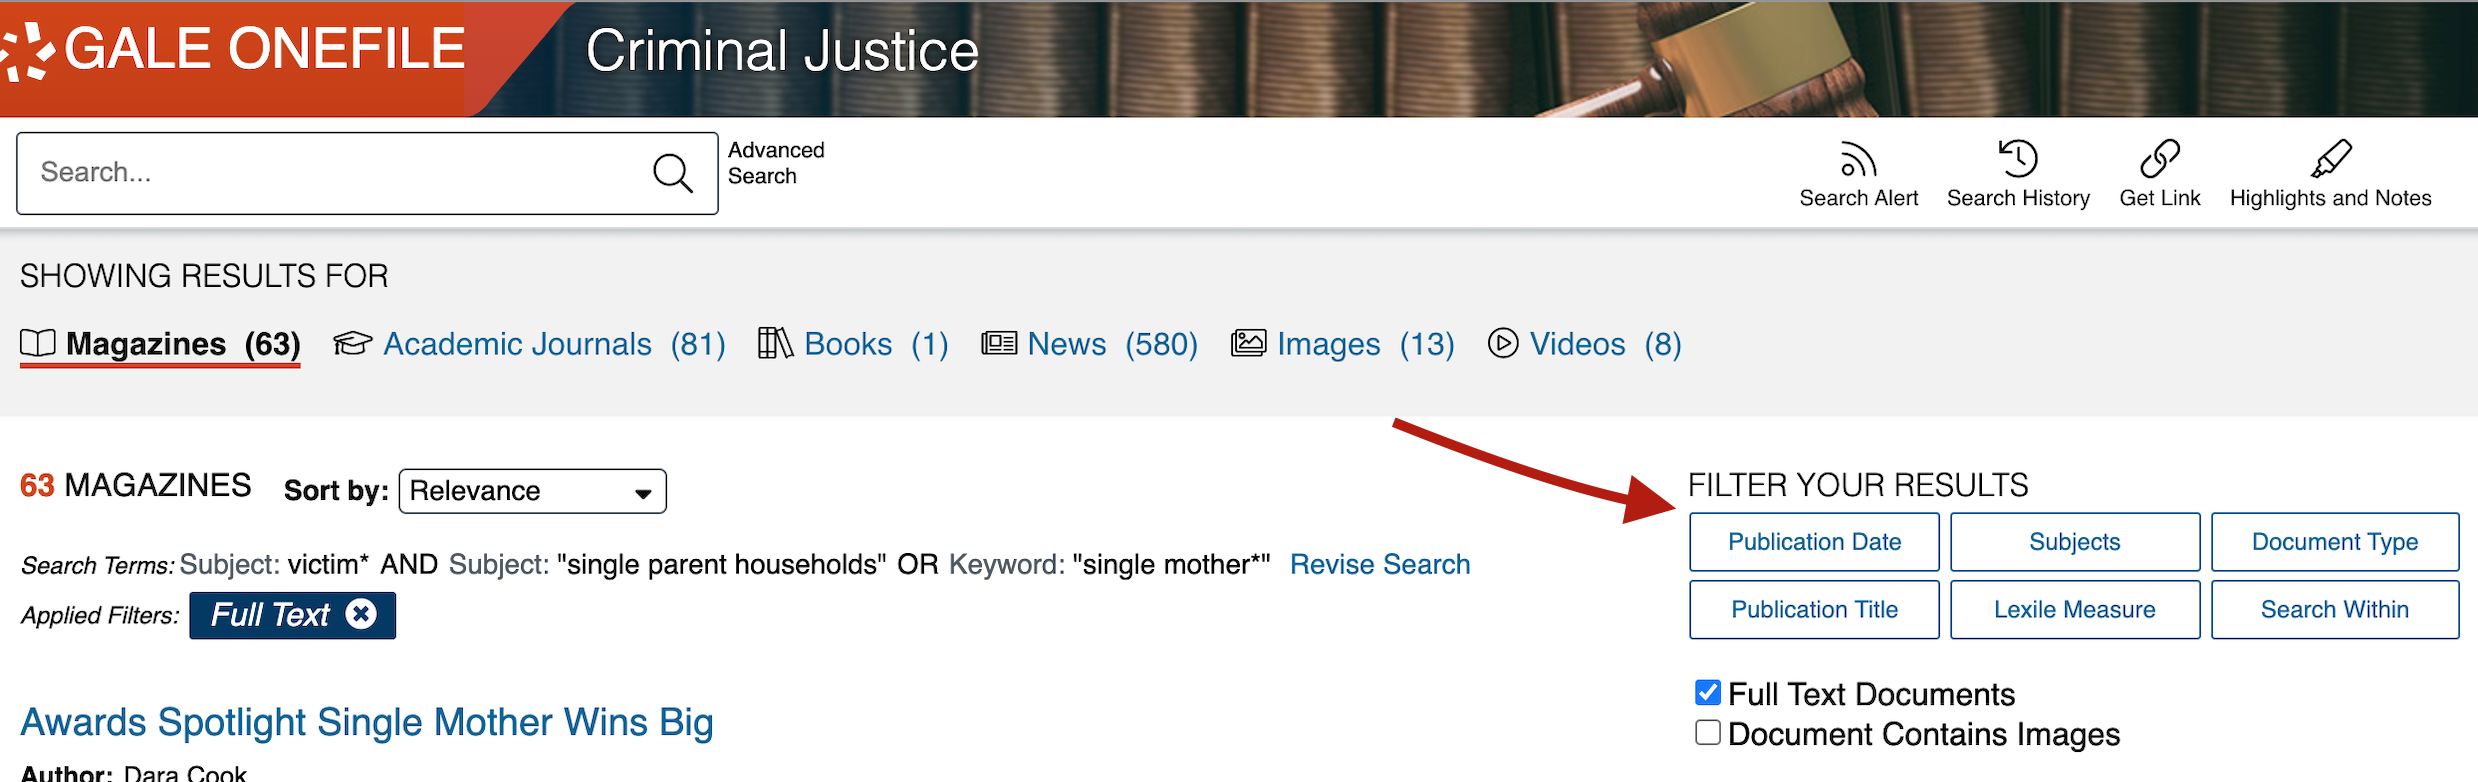 criminal justice collection search page with filter tabs